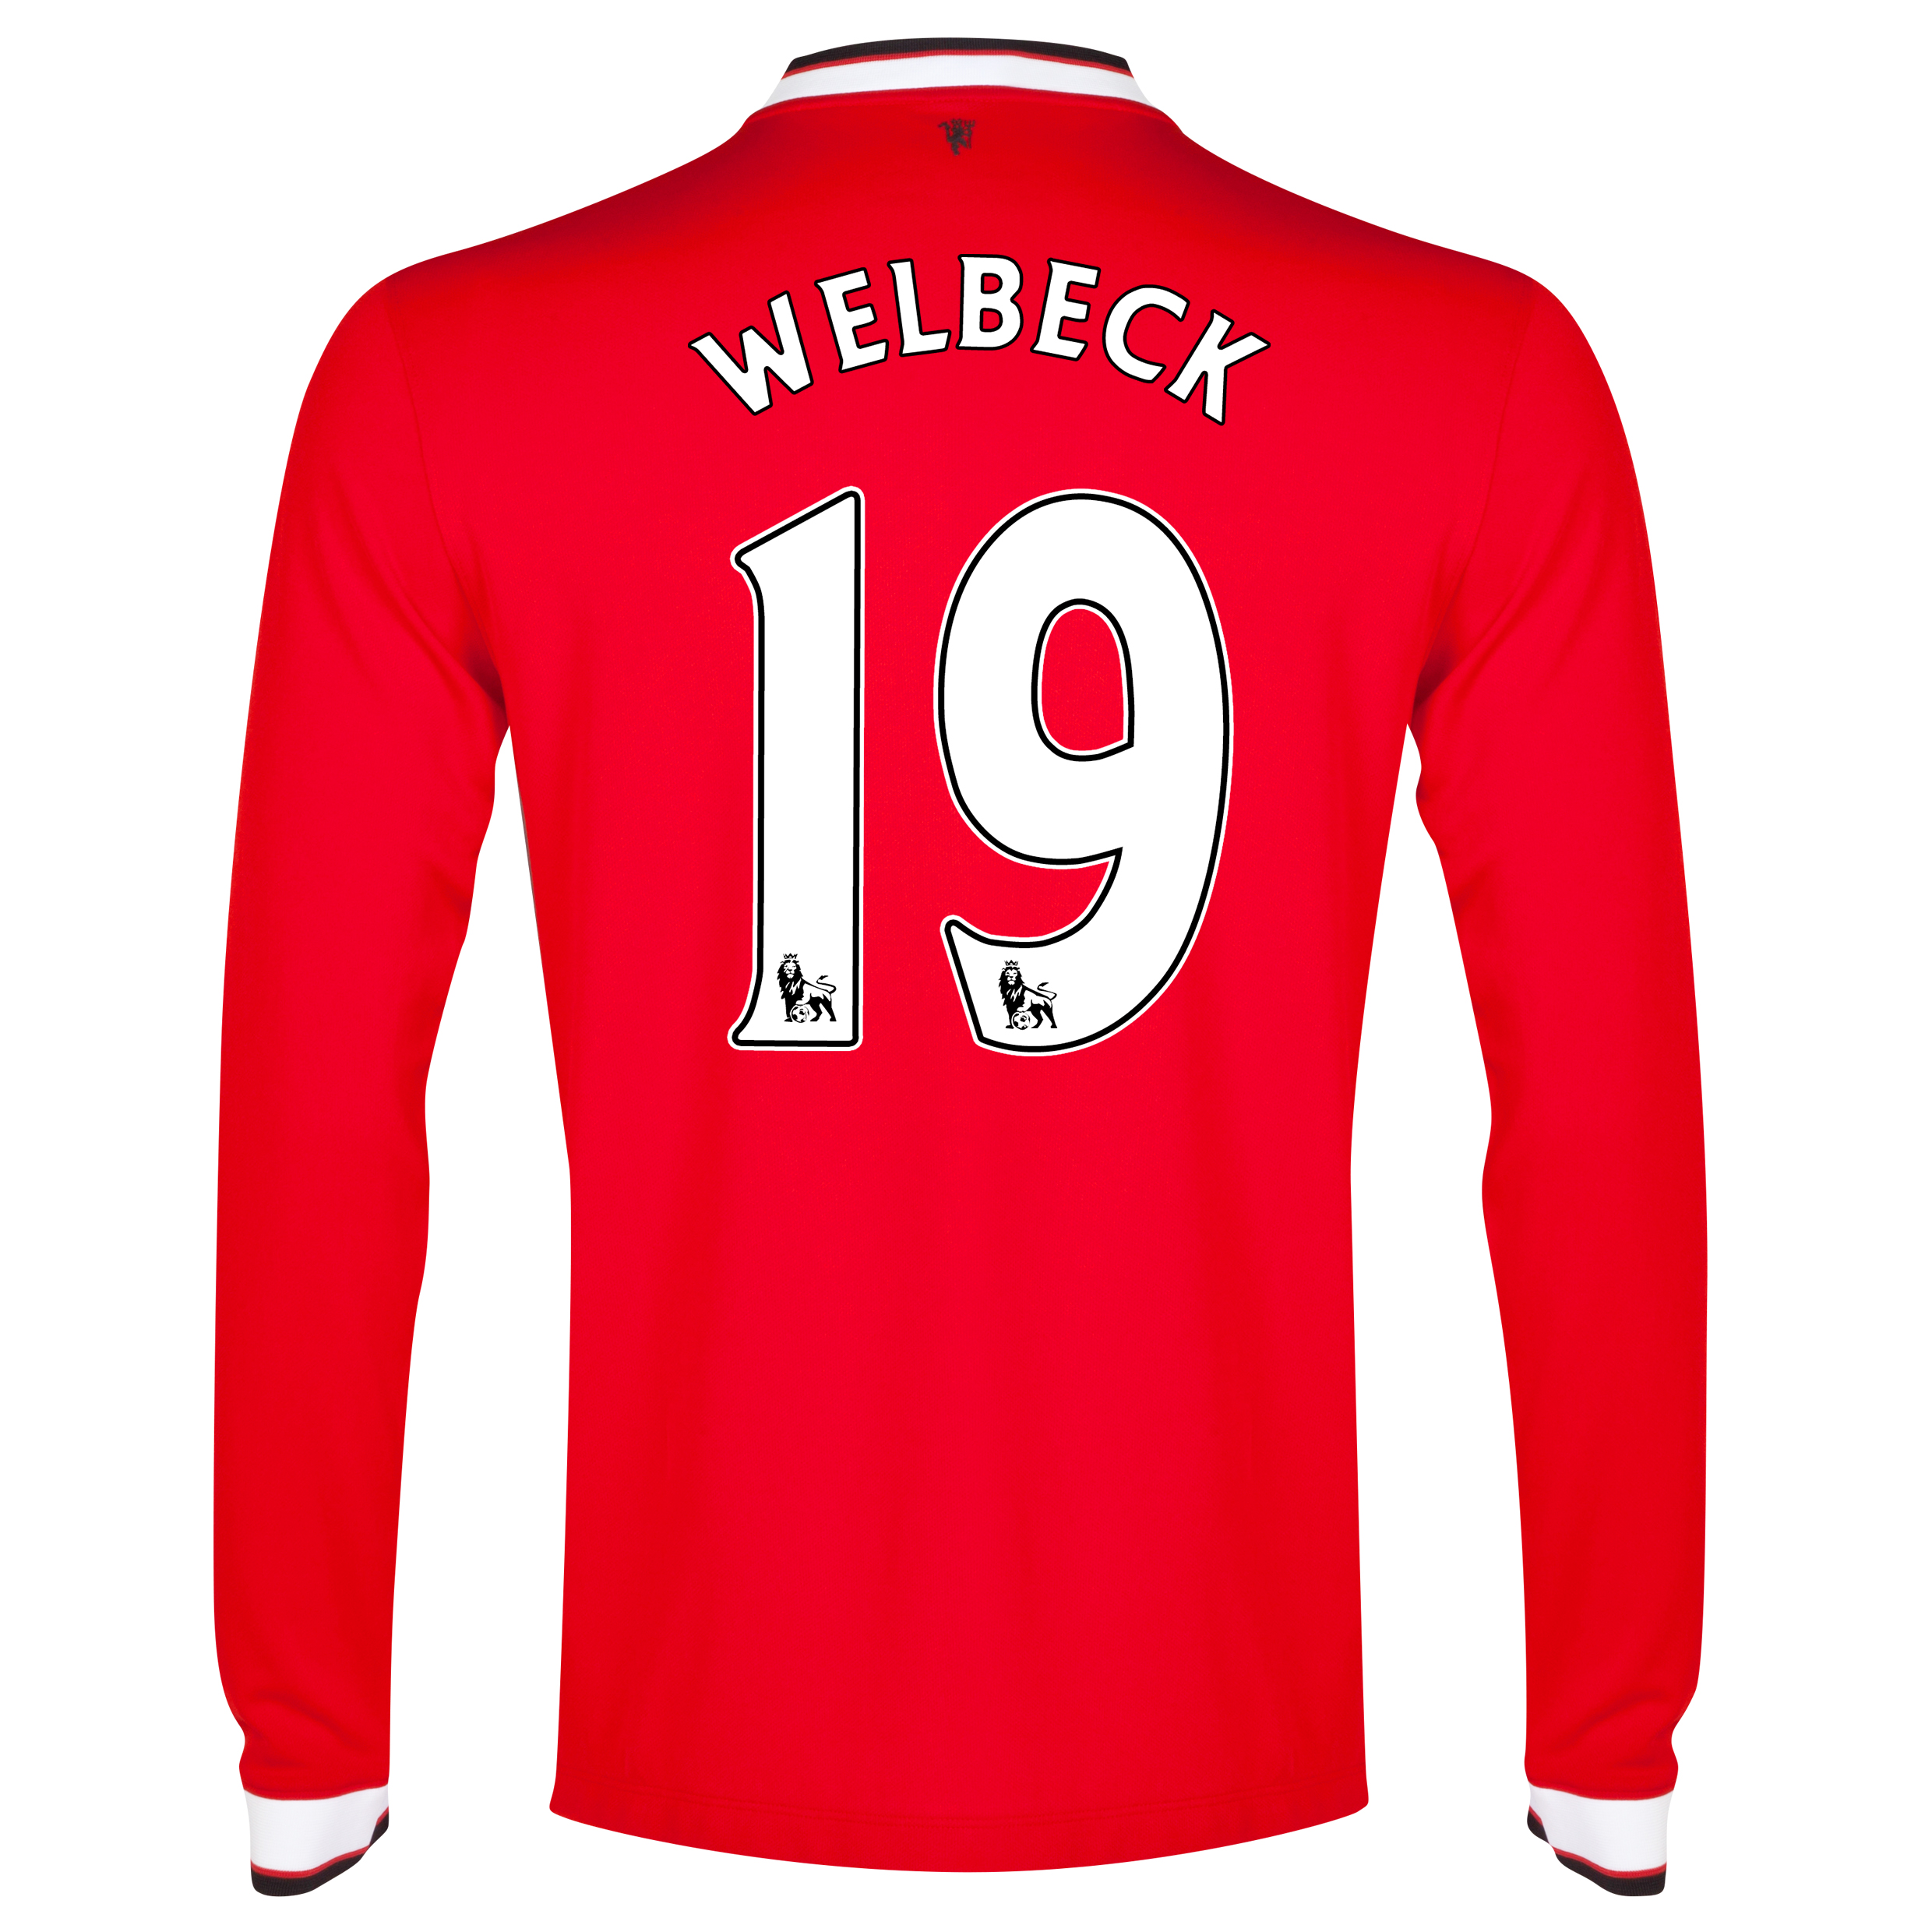 Manchester United Home Shirt 2014/15 - Long Sleeve - Kids Red with Welbeck 19 printing